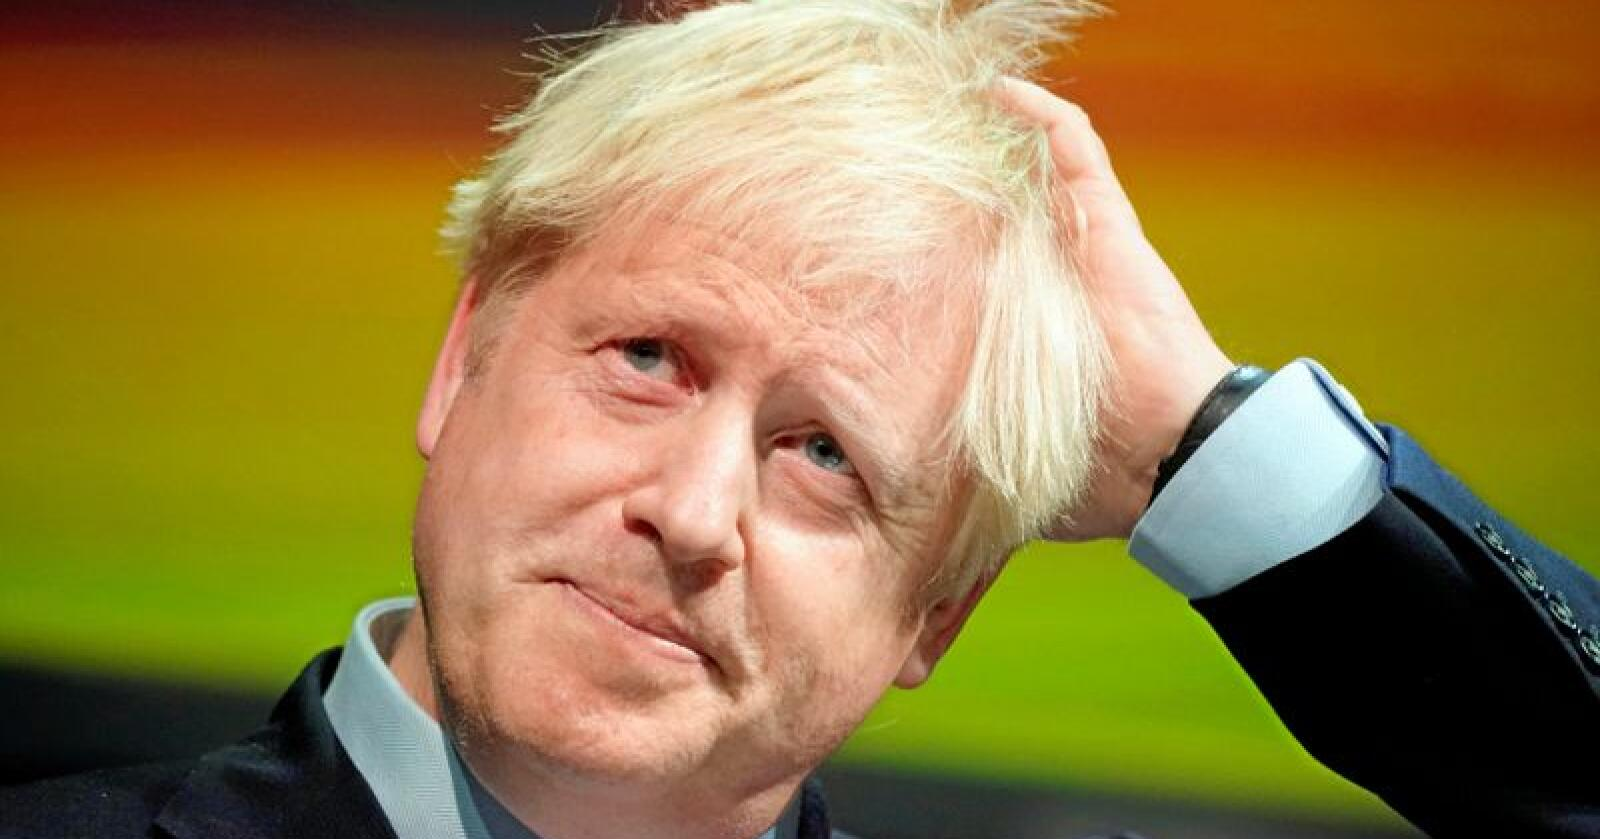 Boris Johnson. Foto: Christopher Furlong/ AP / NTB Scanpix